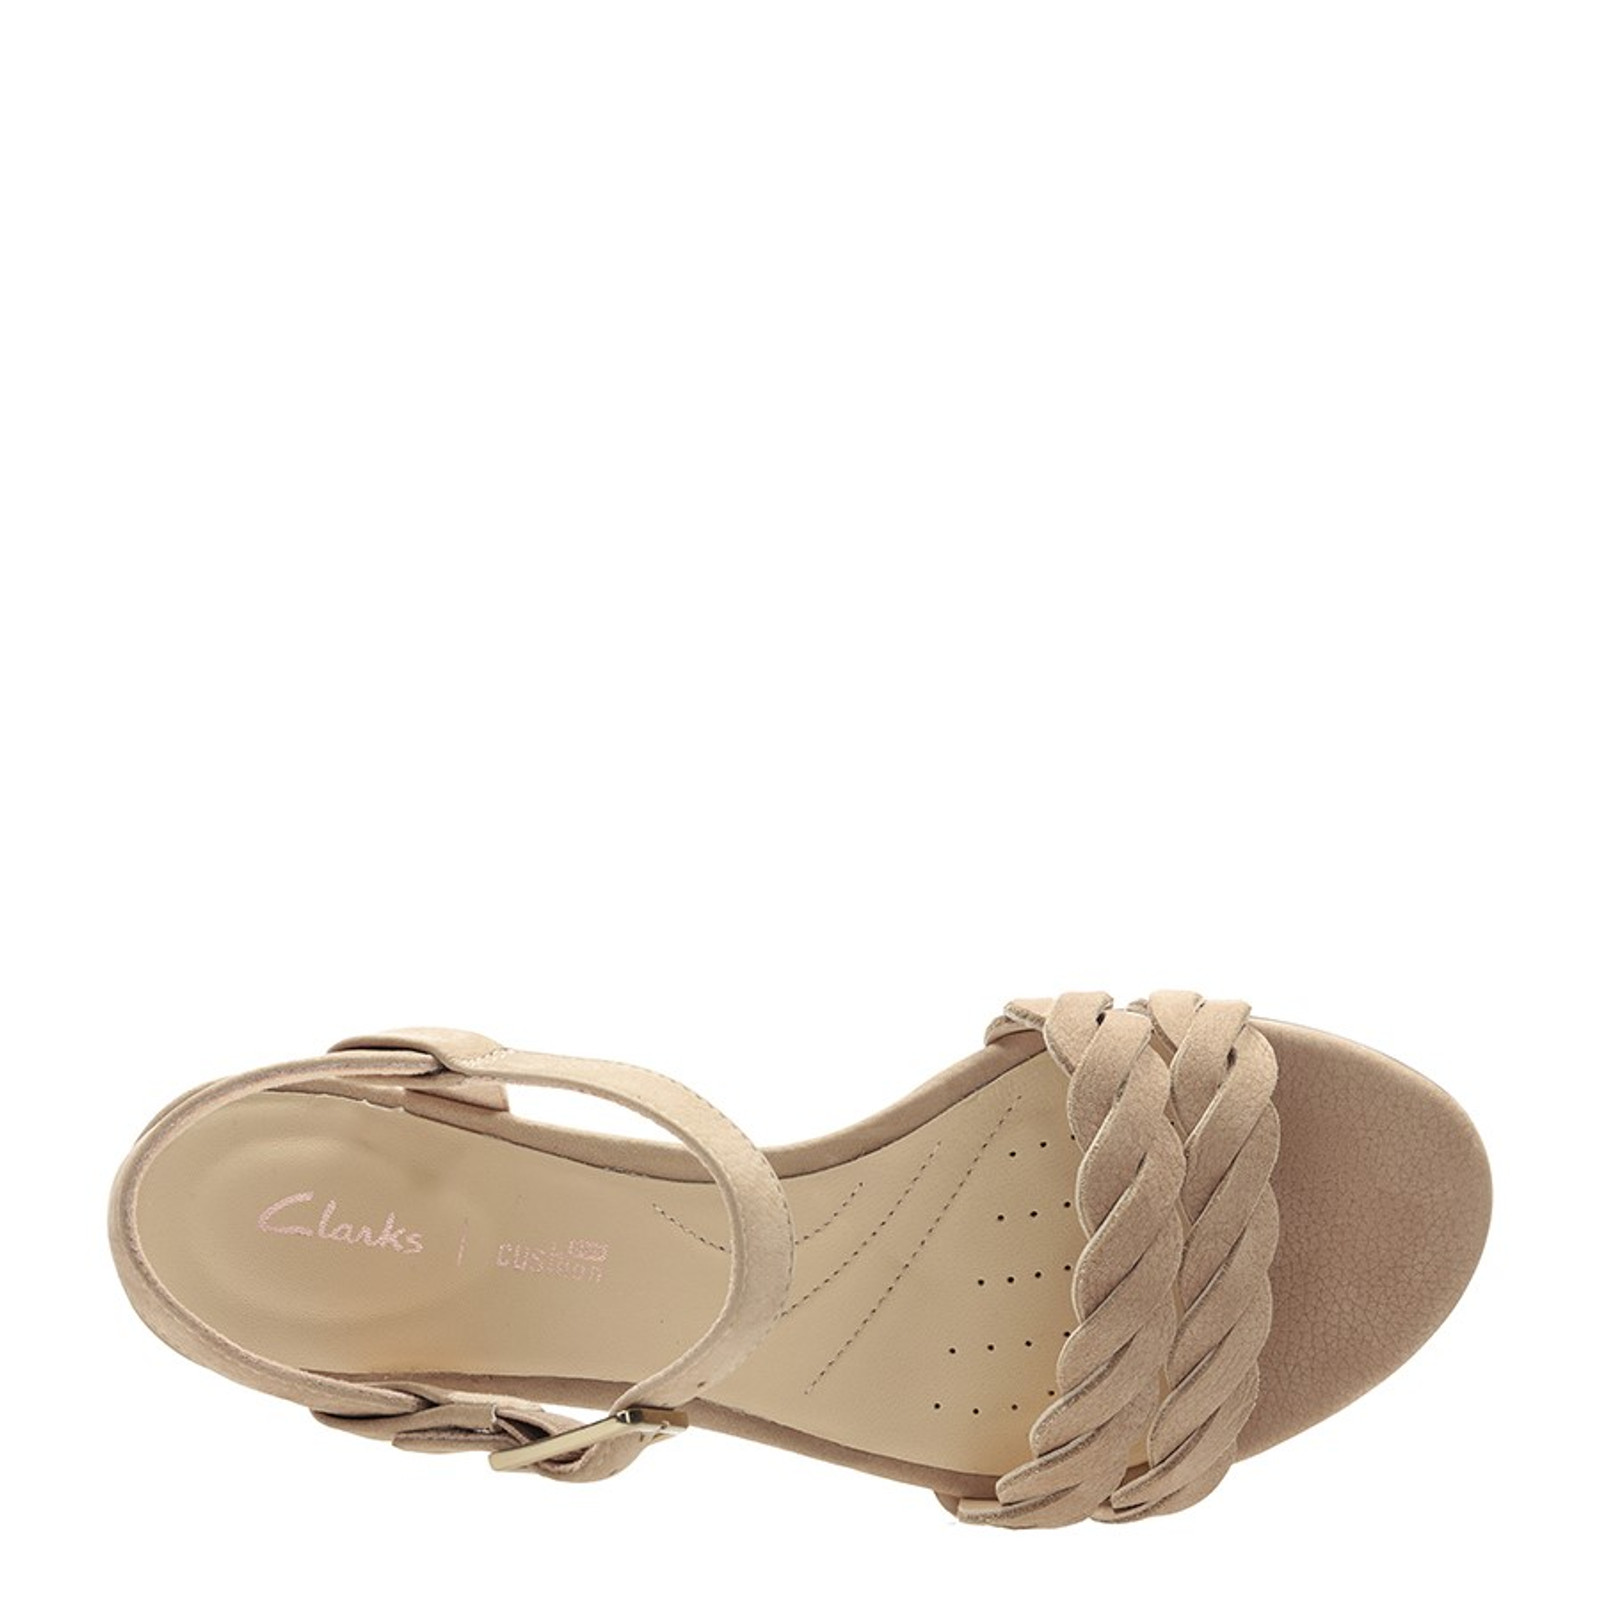 Clarks Womens MENA BLOSSOM Nude Leather